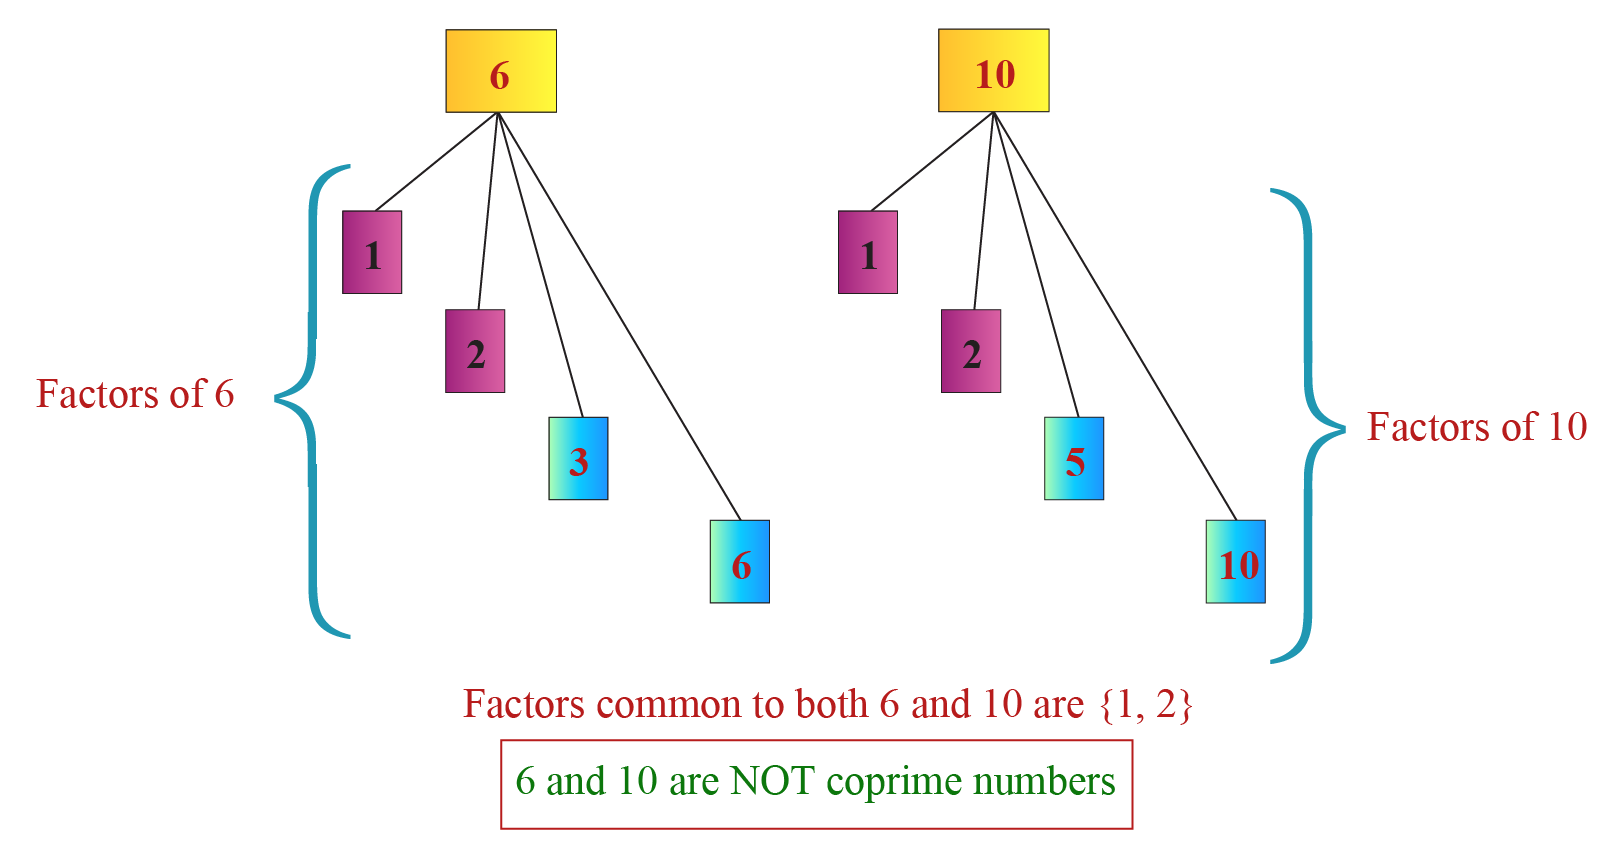 What are coprime numbers? Showing 6 and 10 is NOT a coprime pair.